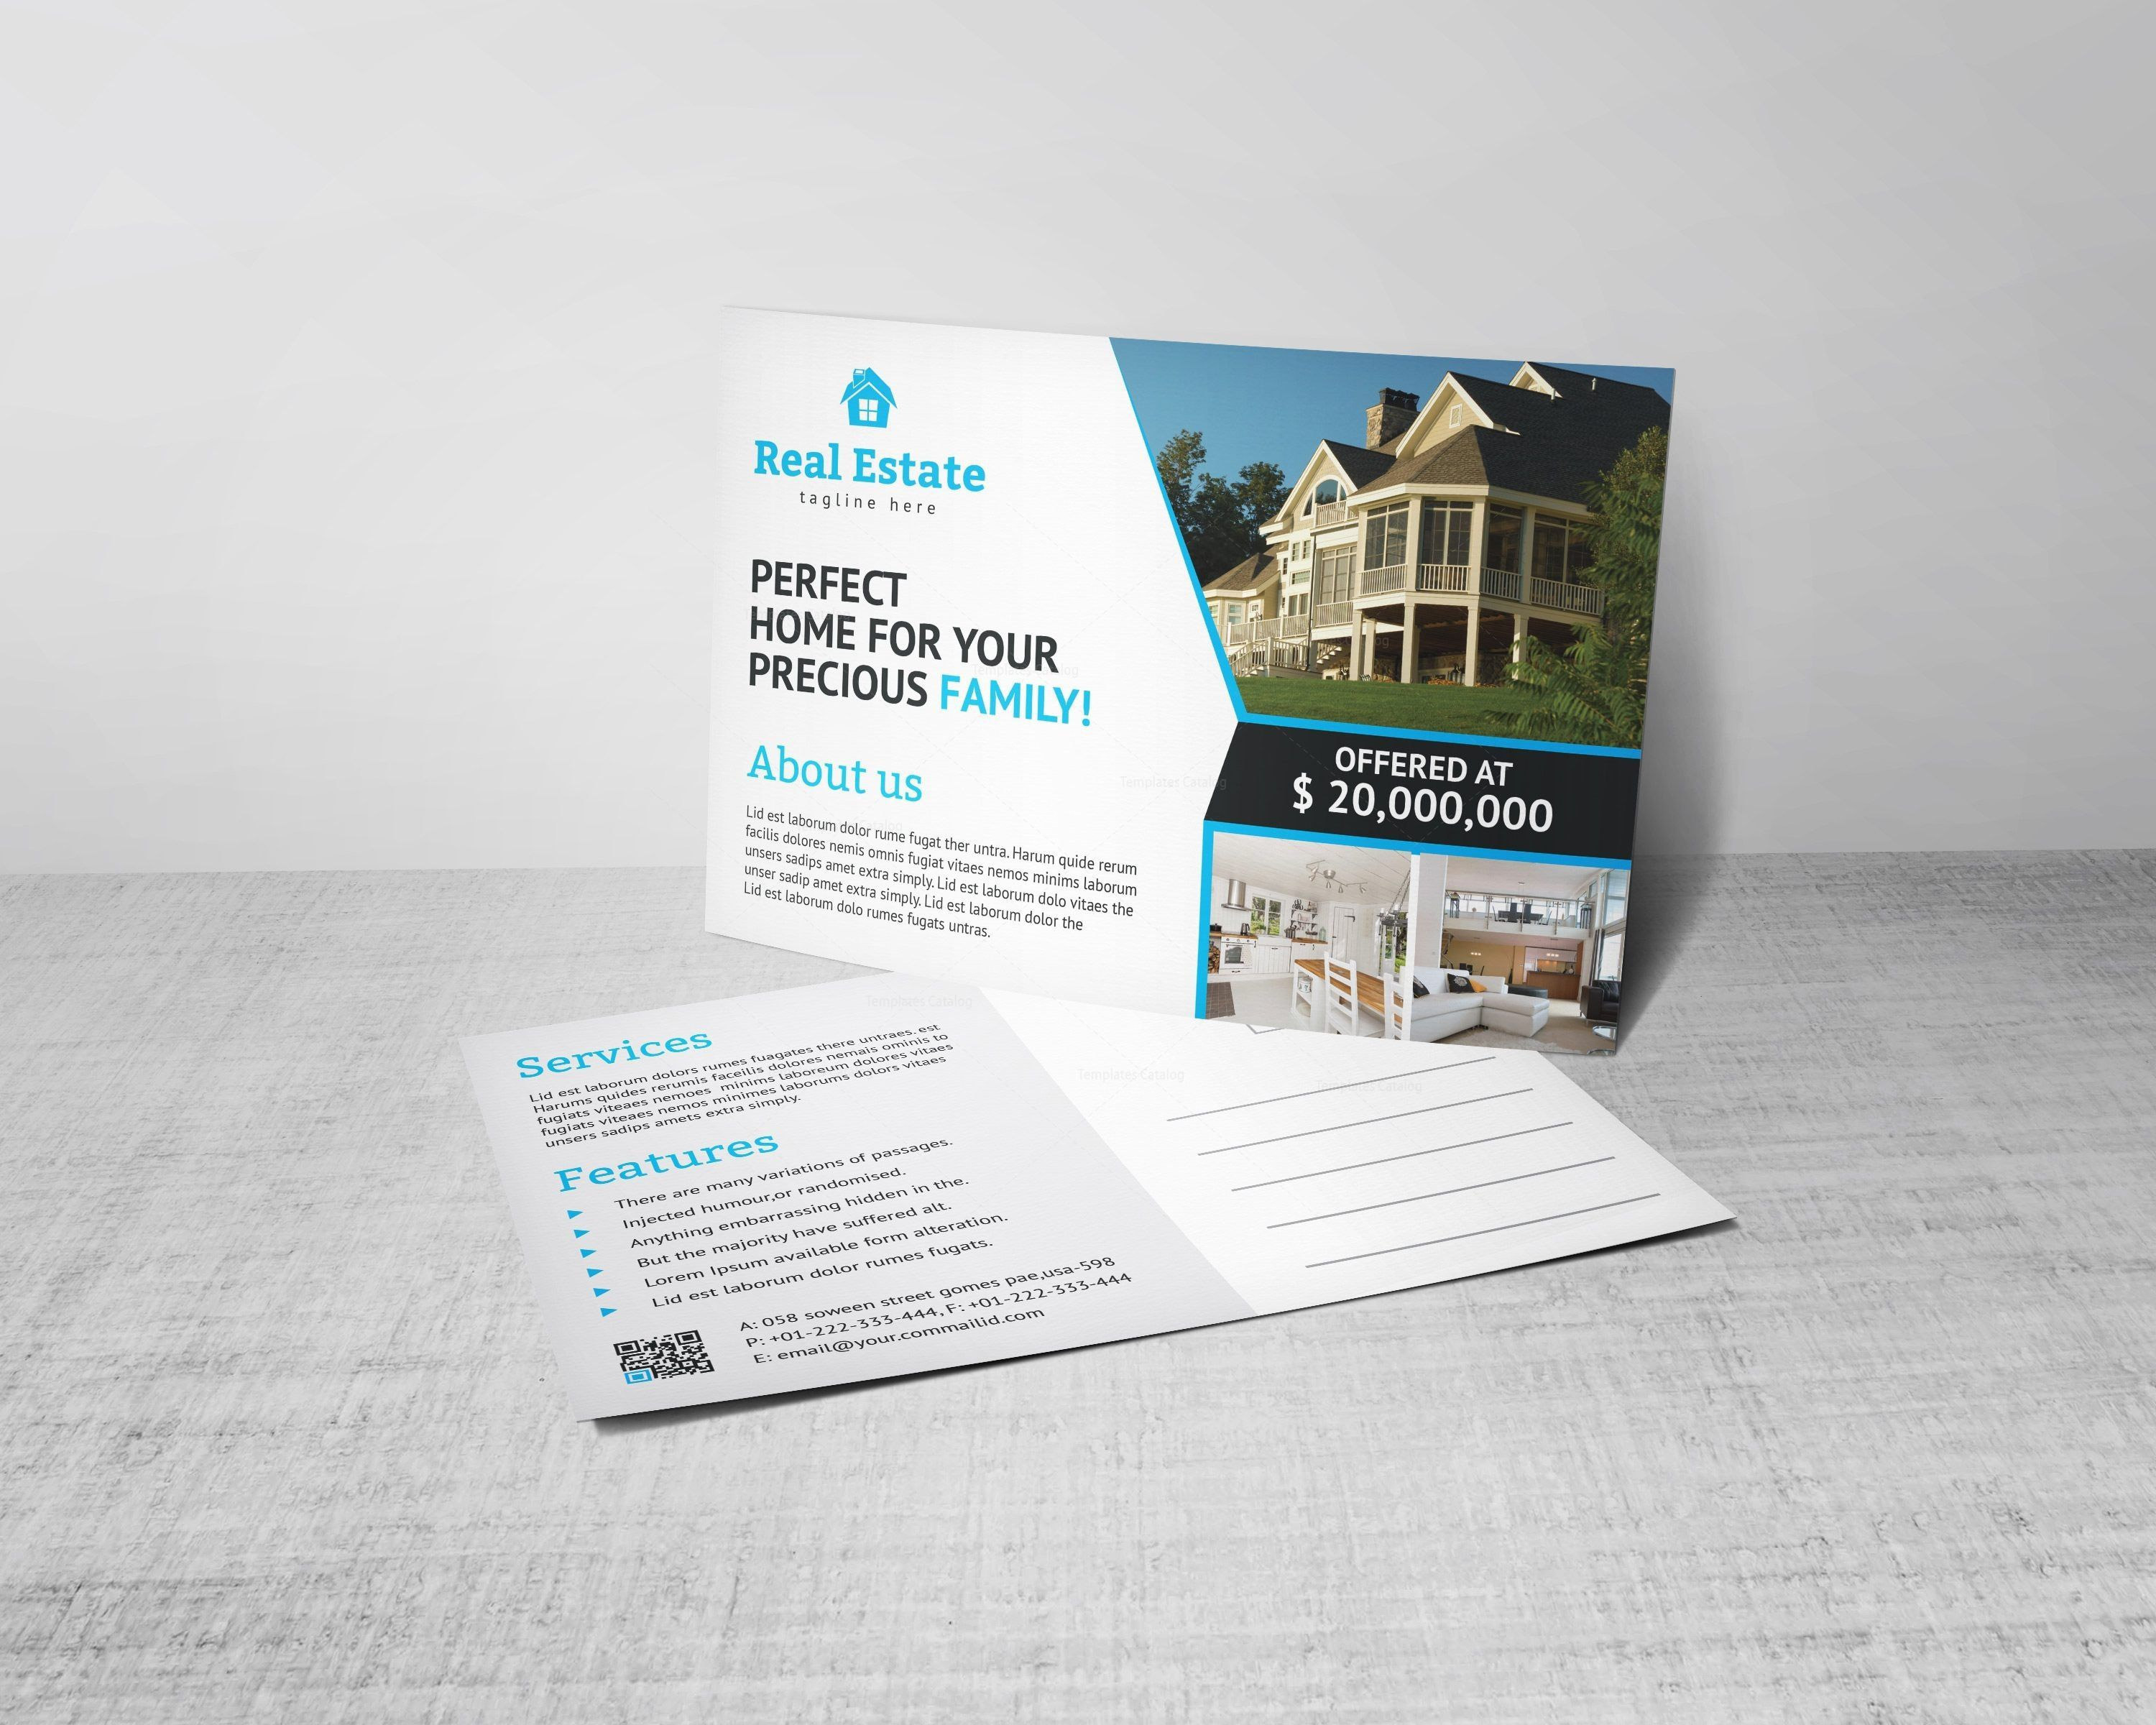 004 Excellent Real Estate Postcard Template Design  Agent For Photoshop InvestorFull